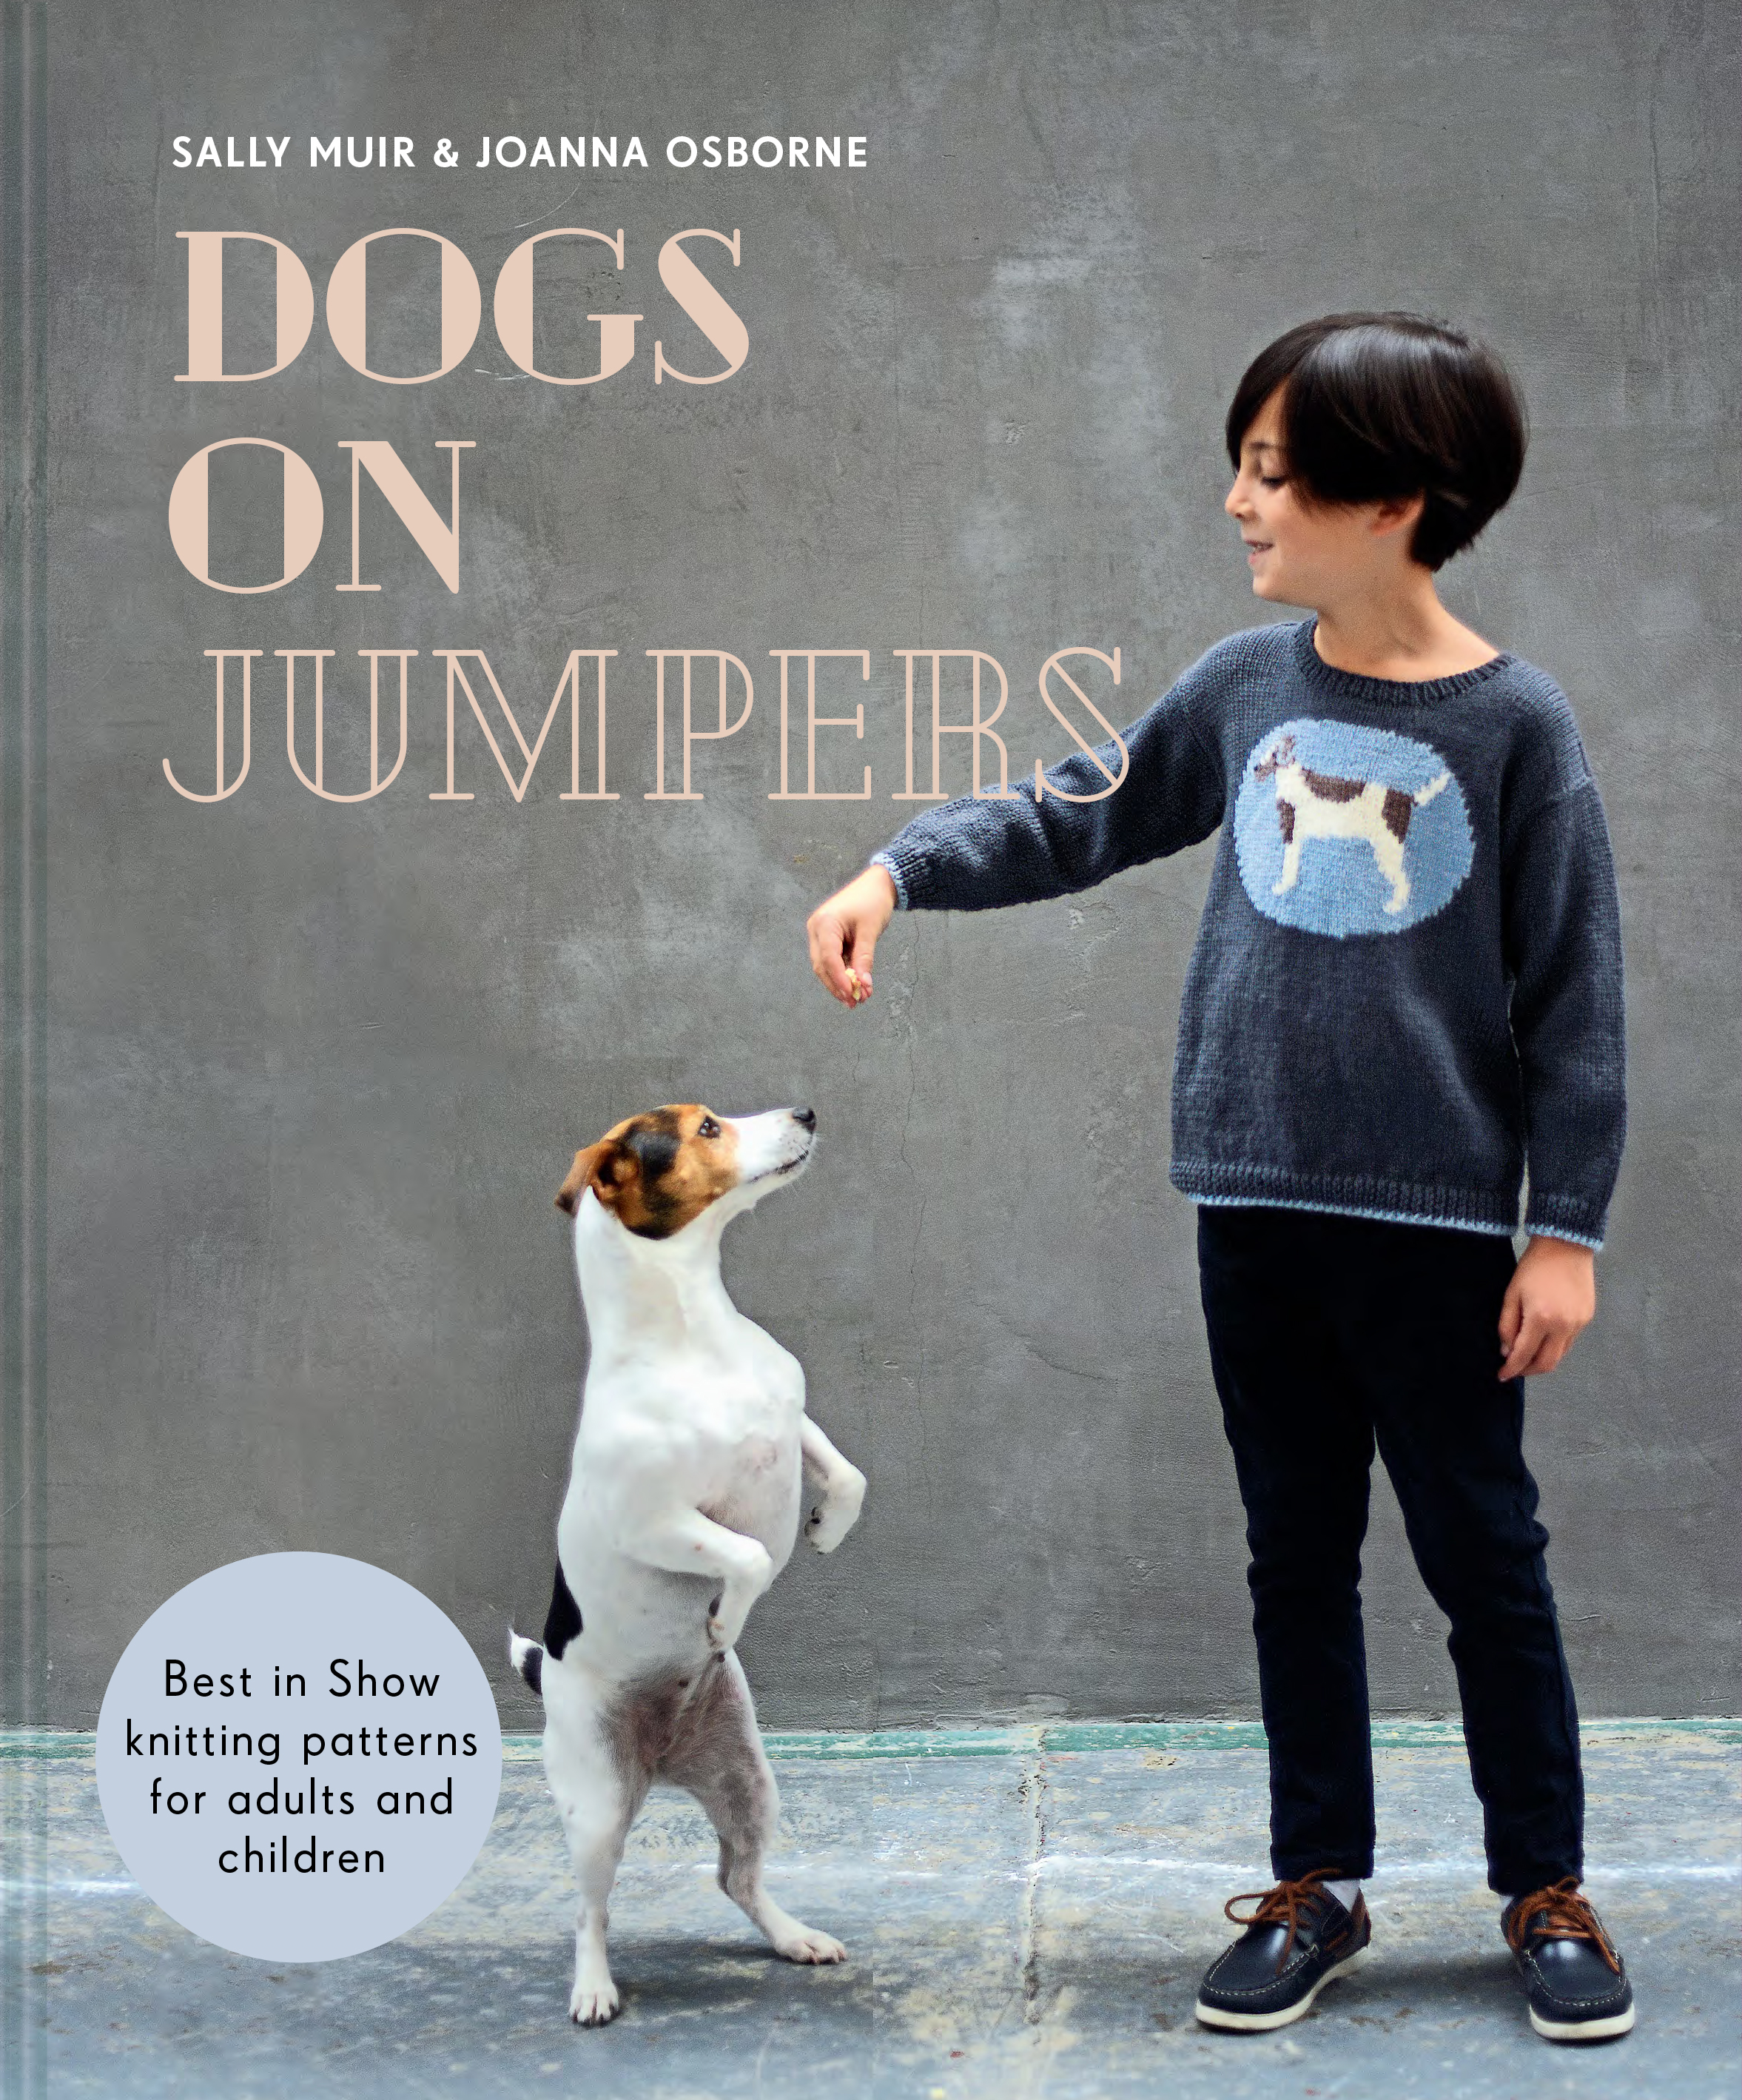 Dogs on Jumpers